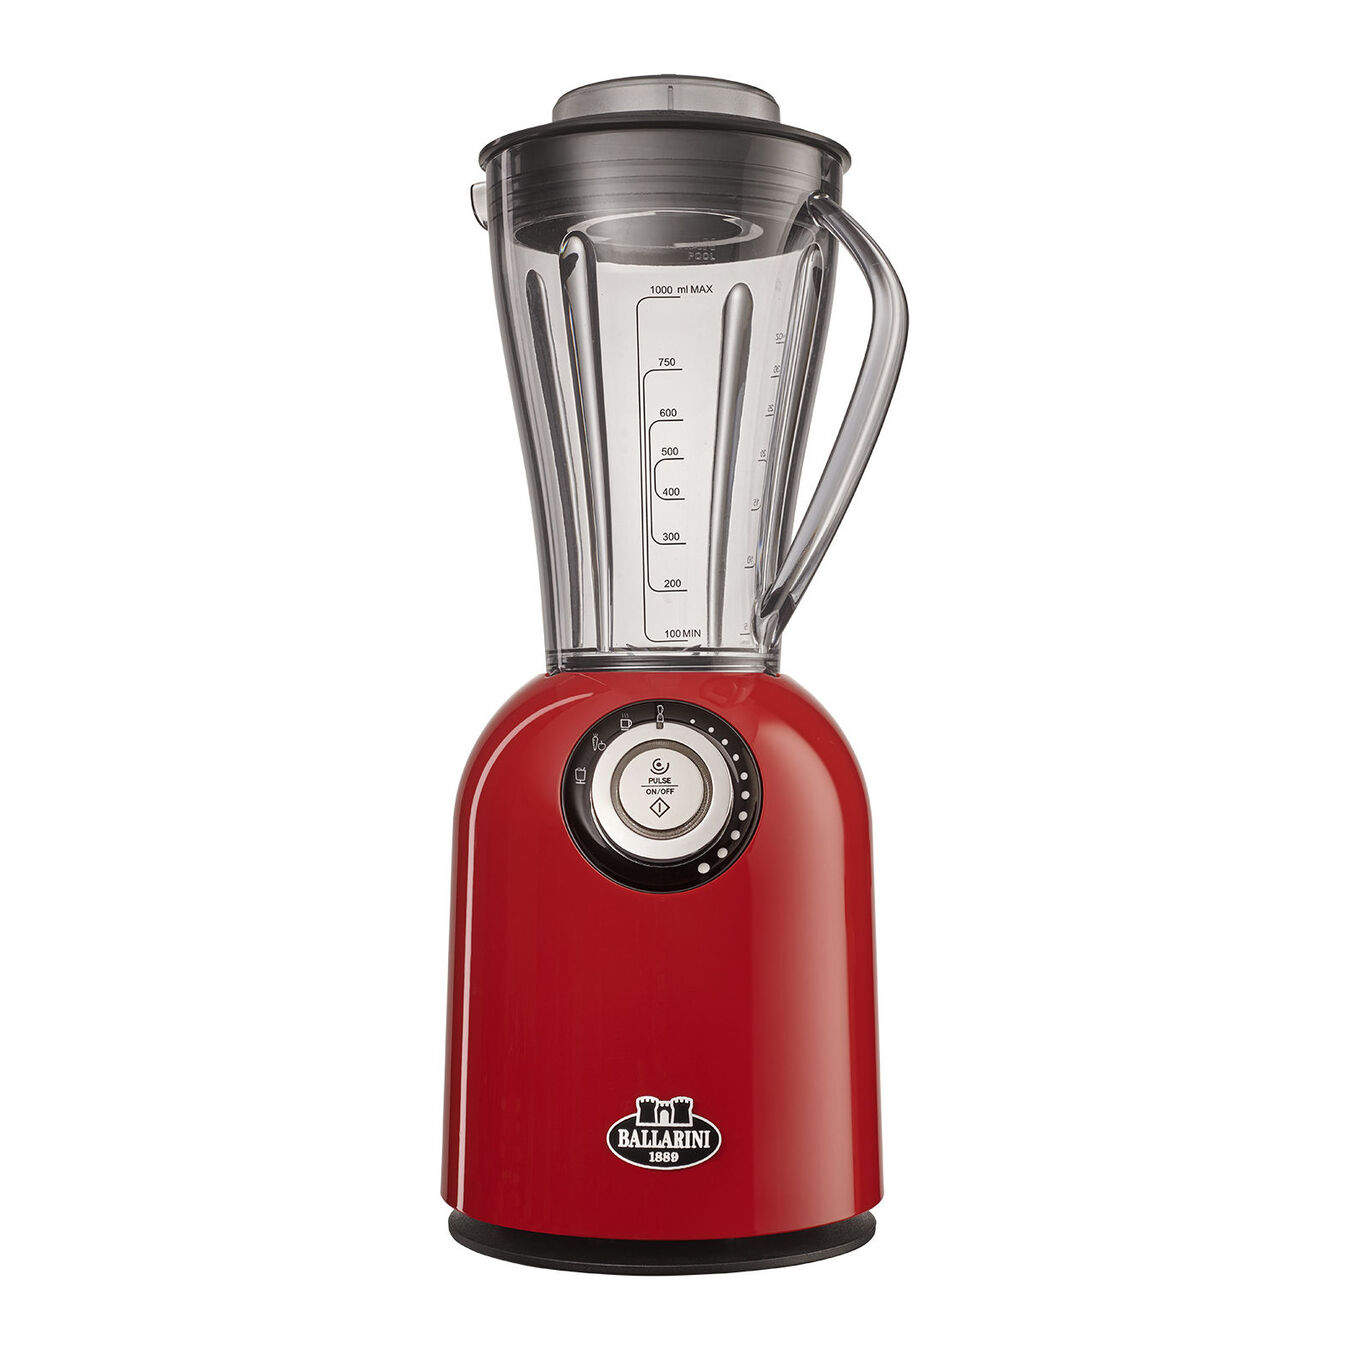 Countertop Blender - Cherry Red,,large 1